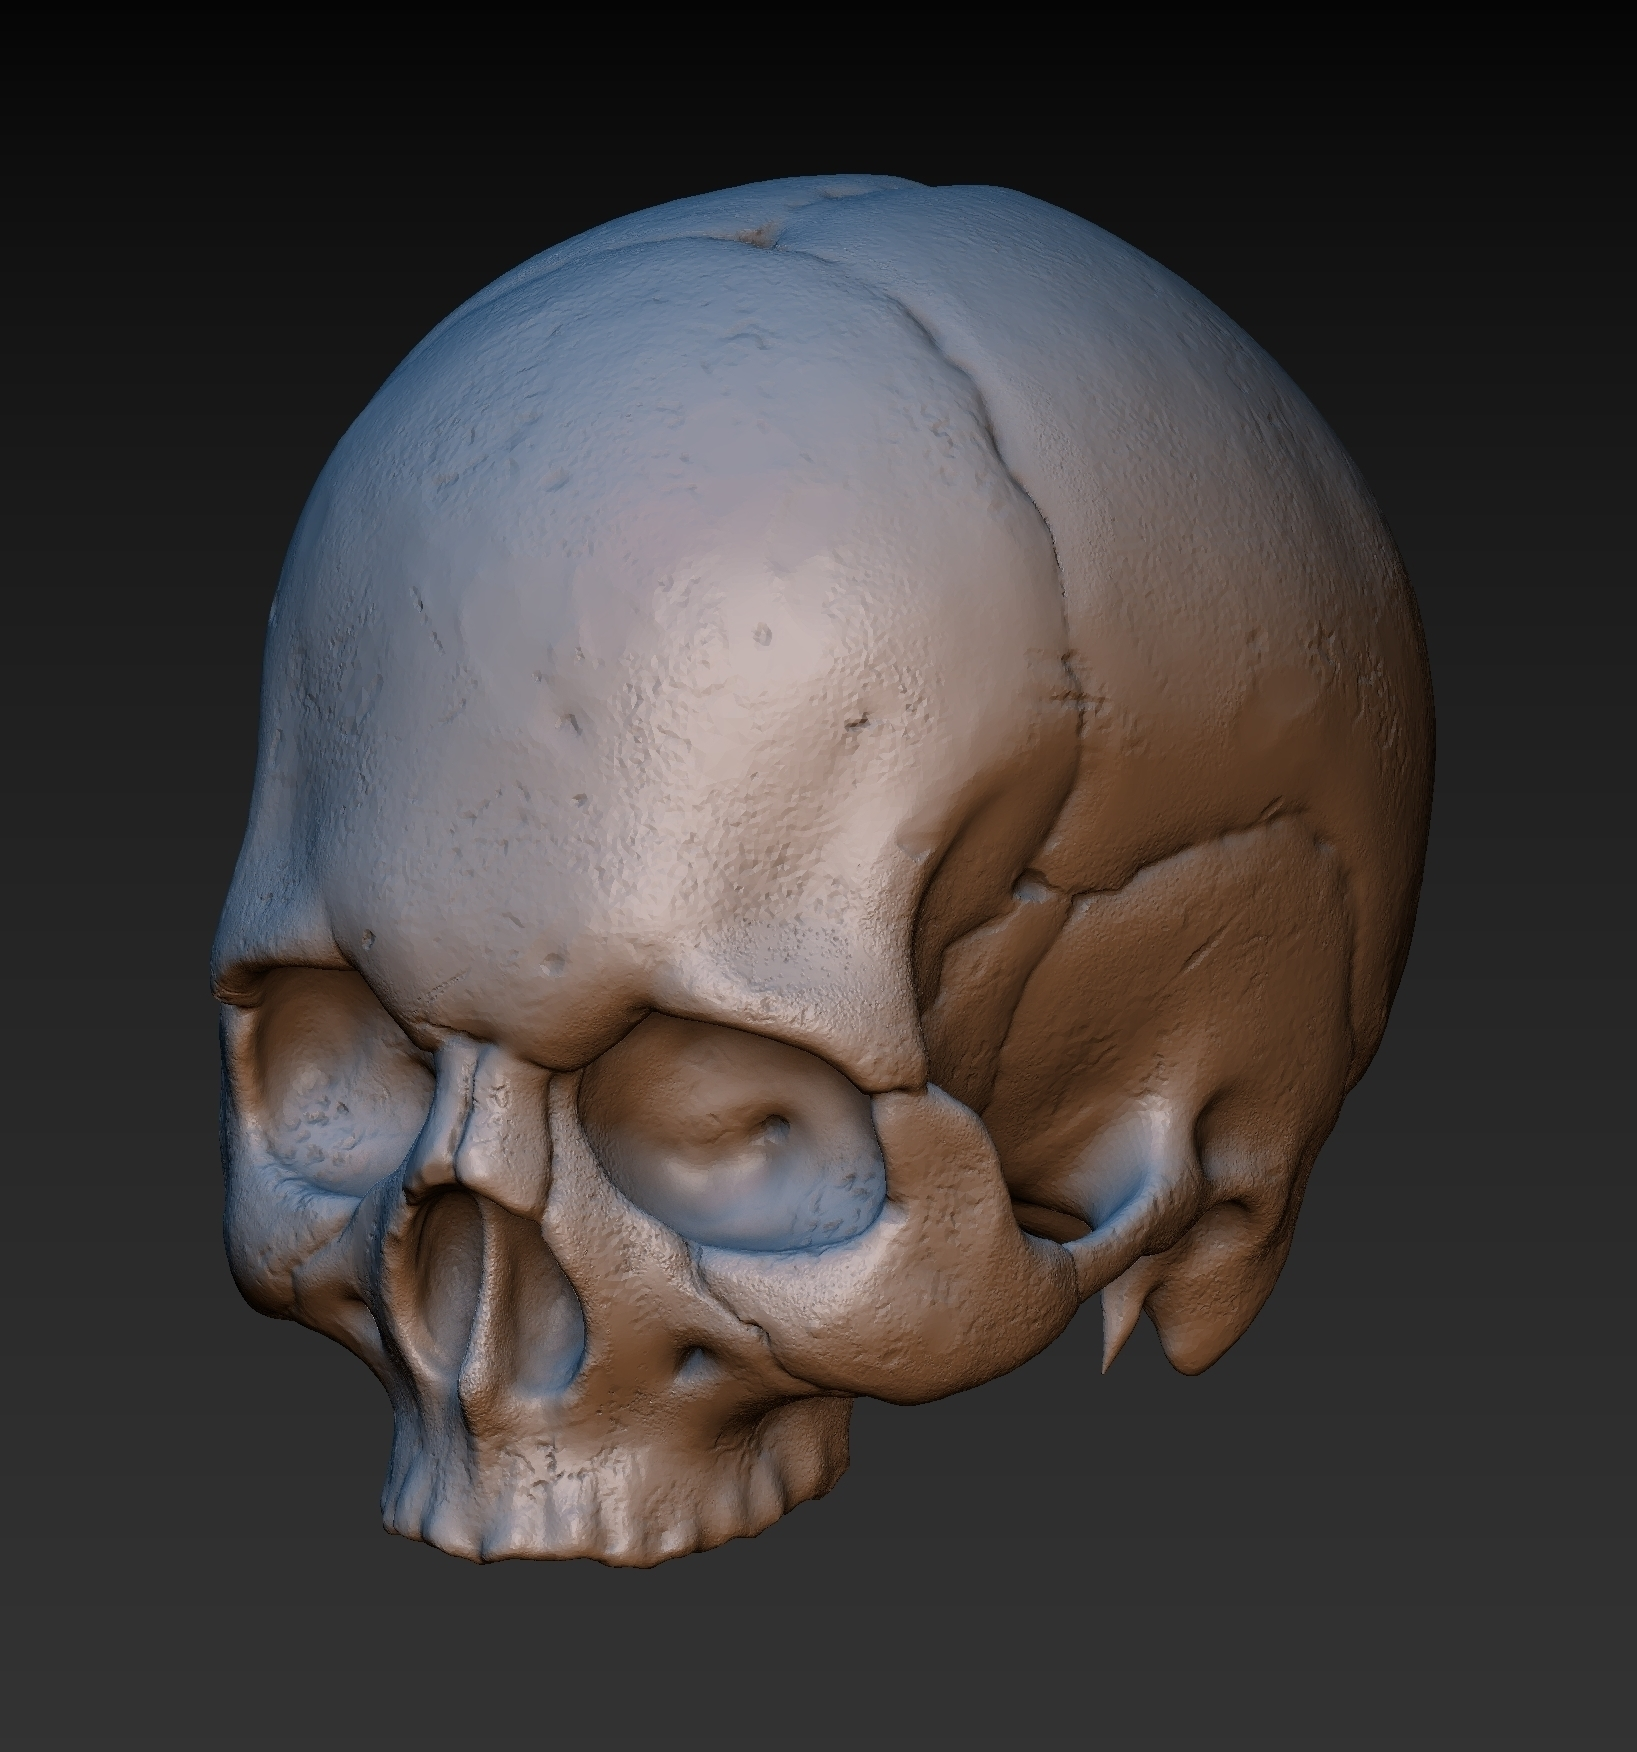 Skull  Without the lower jaw  @ Pinshape